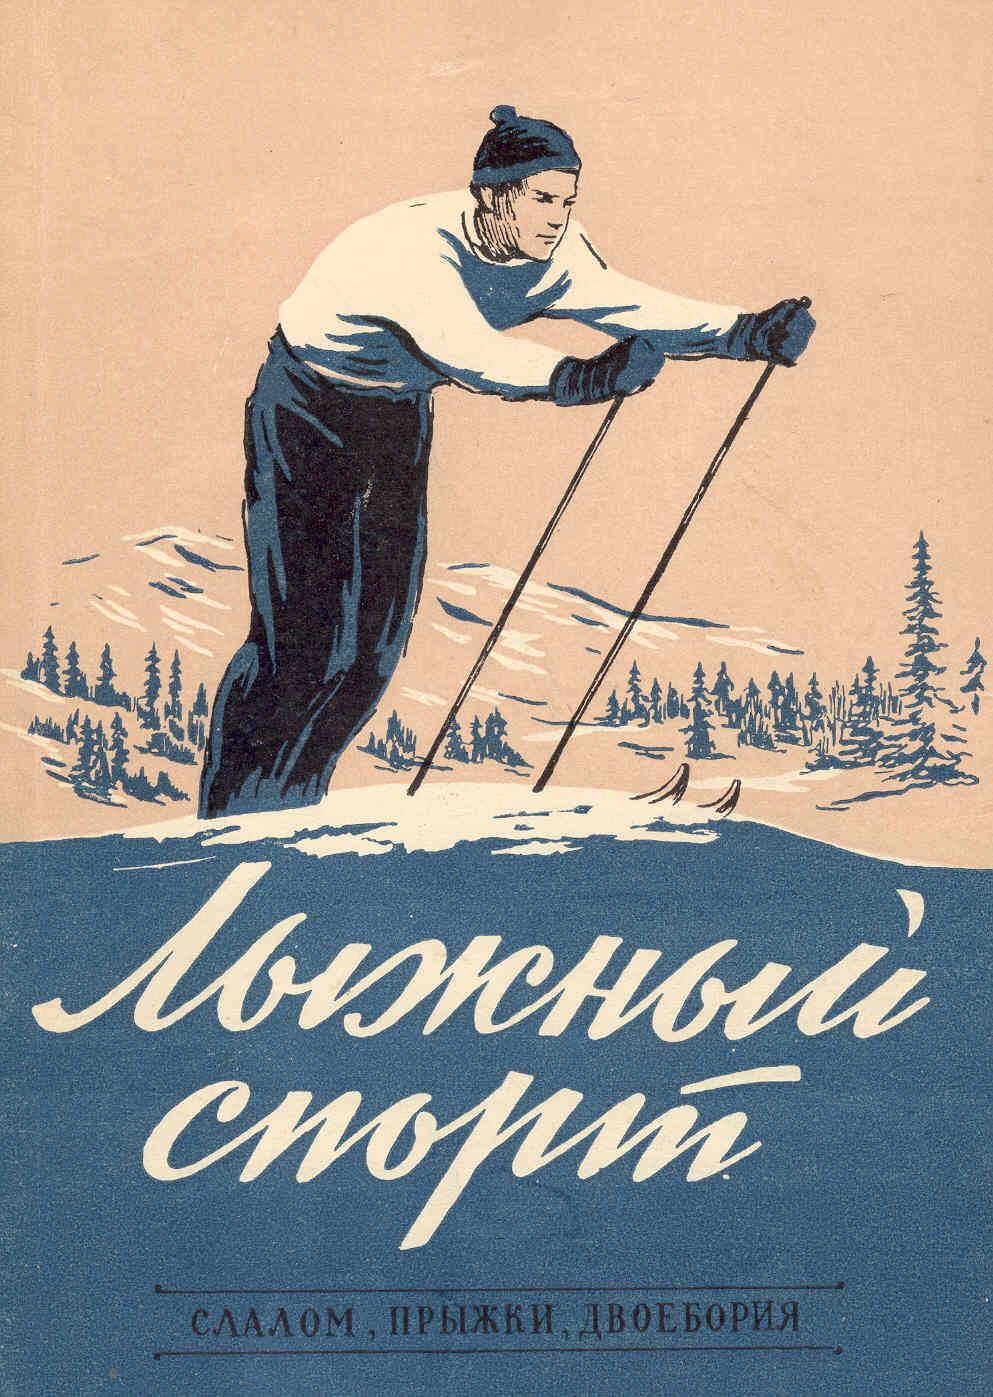 Ligny Sport Slalom, Published in Moscow ~ 1953